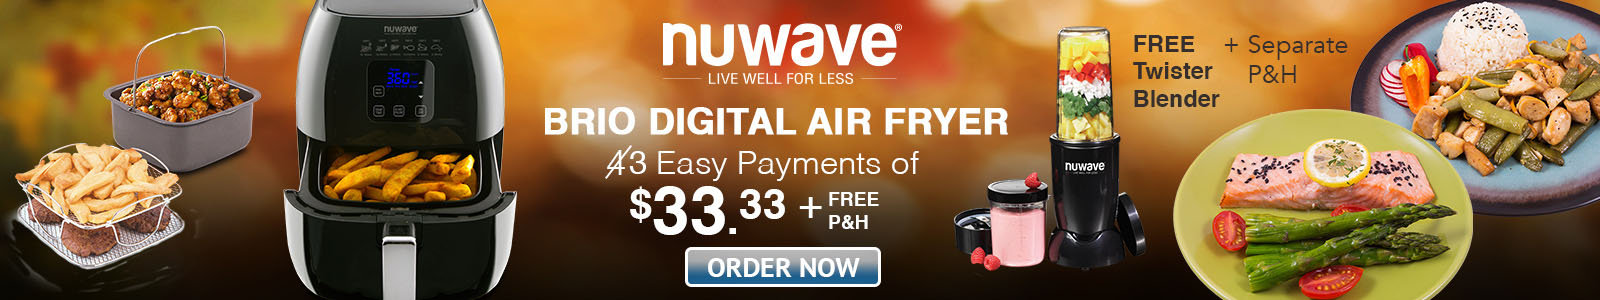 NuWave Brio Digital Air Fryer Only 3 Easy Payments of $33.33 + FREE P&H + Choose up to 4 gifts